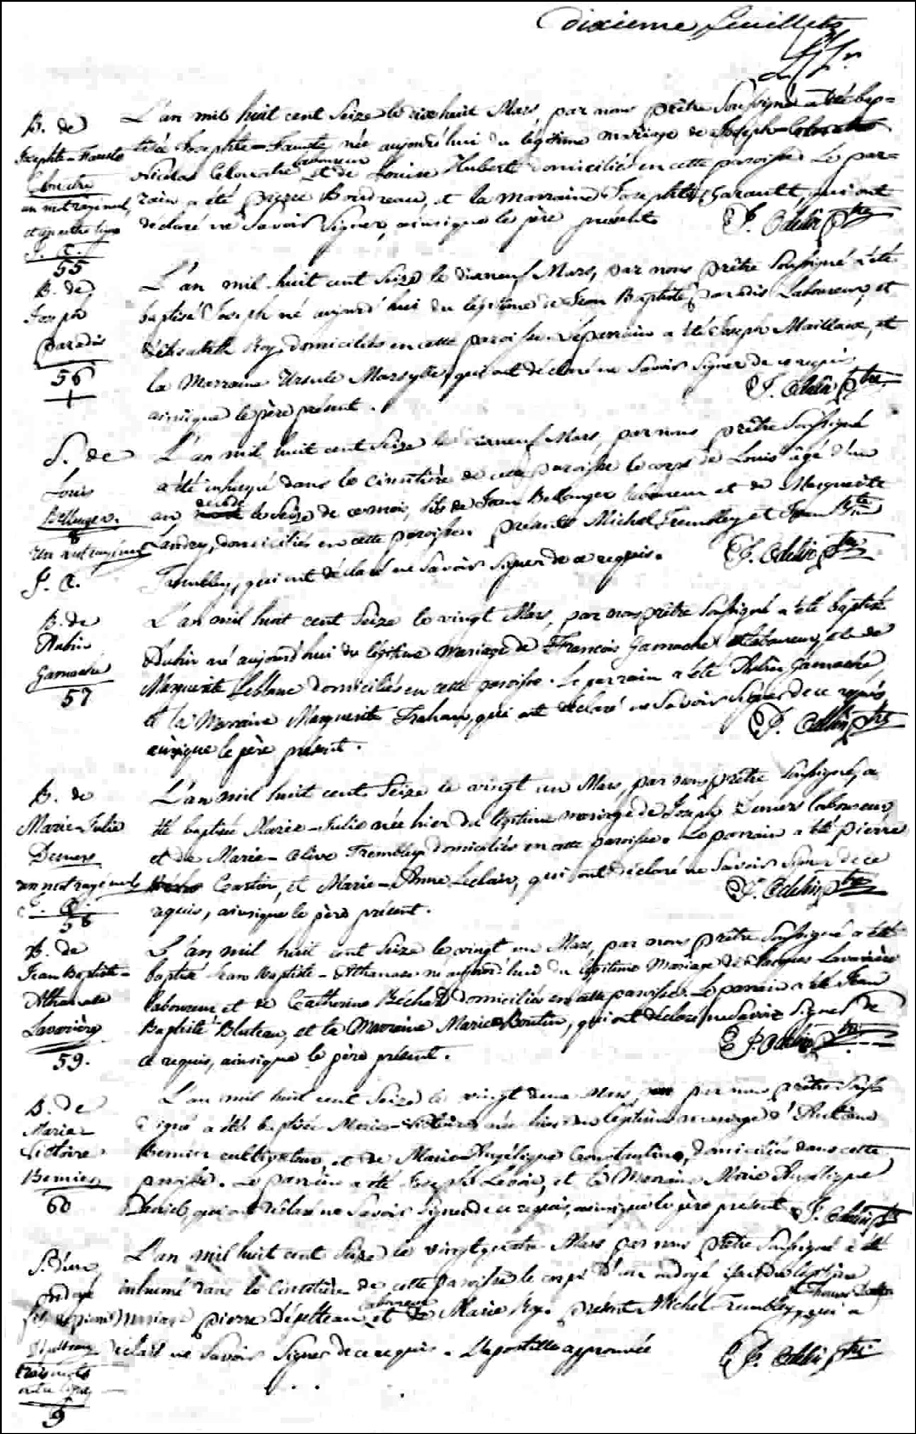 The Birth and Baptismal Record of Aubin Gamache - 1816